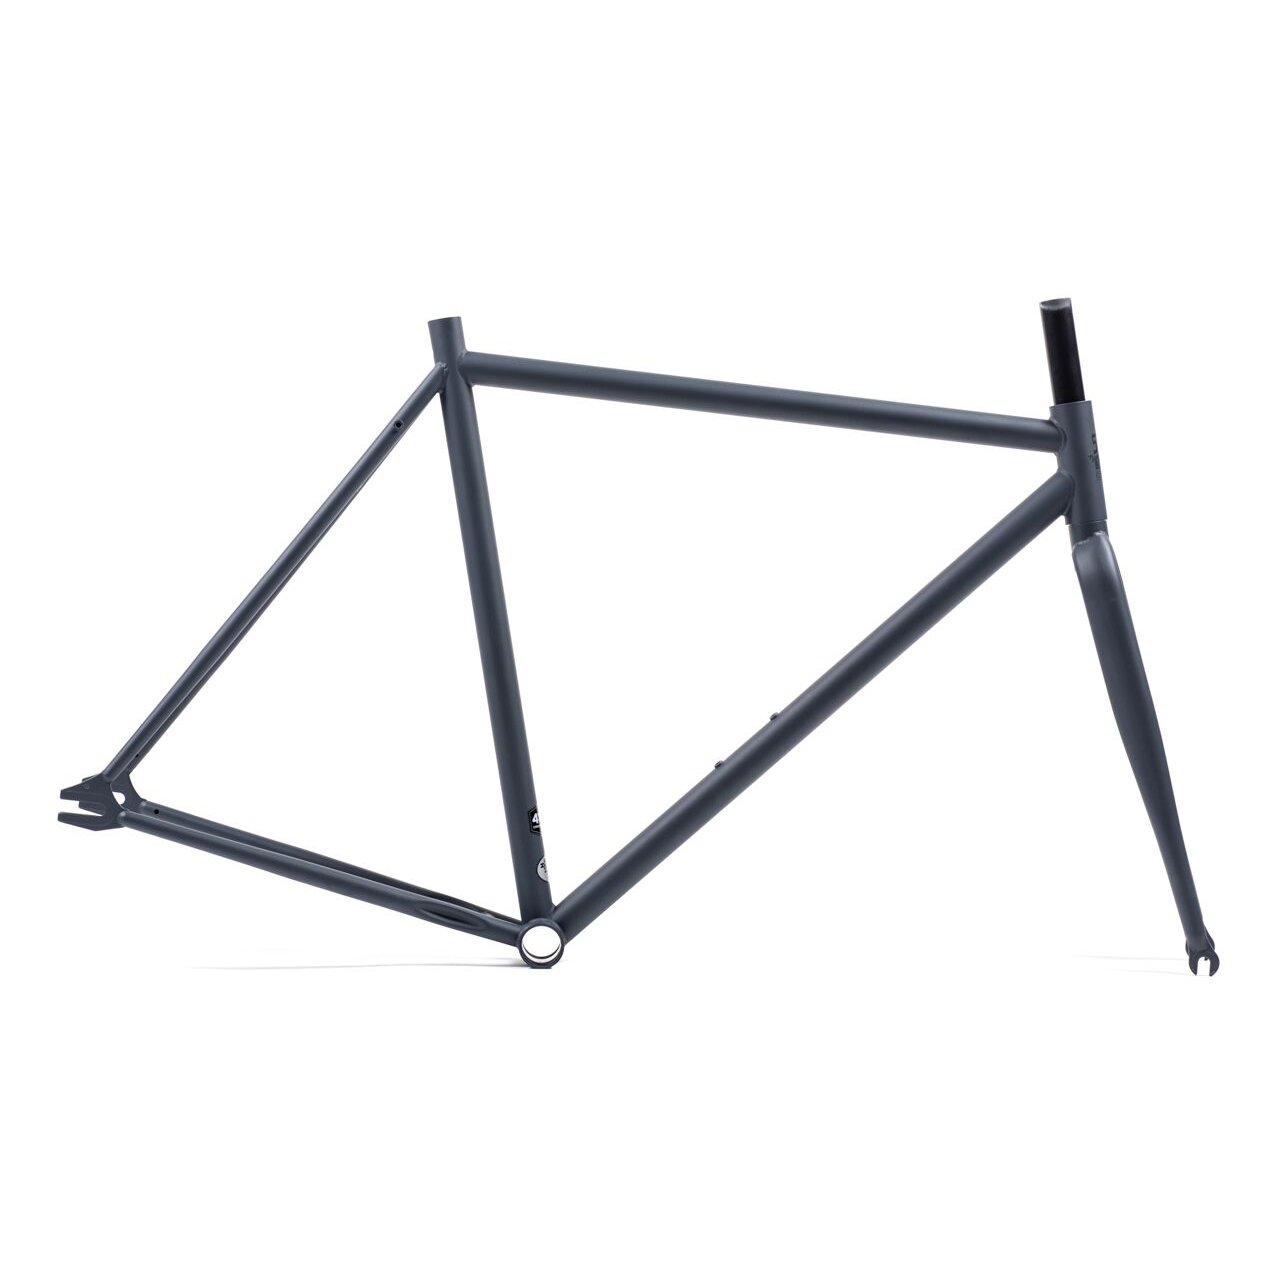 Amazon.com : Unbranded Steel Track Single Speed 700c Bicycle Frame ...